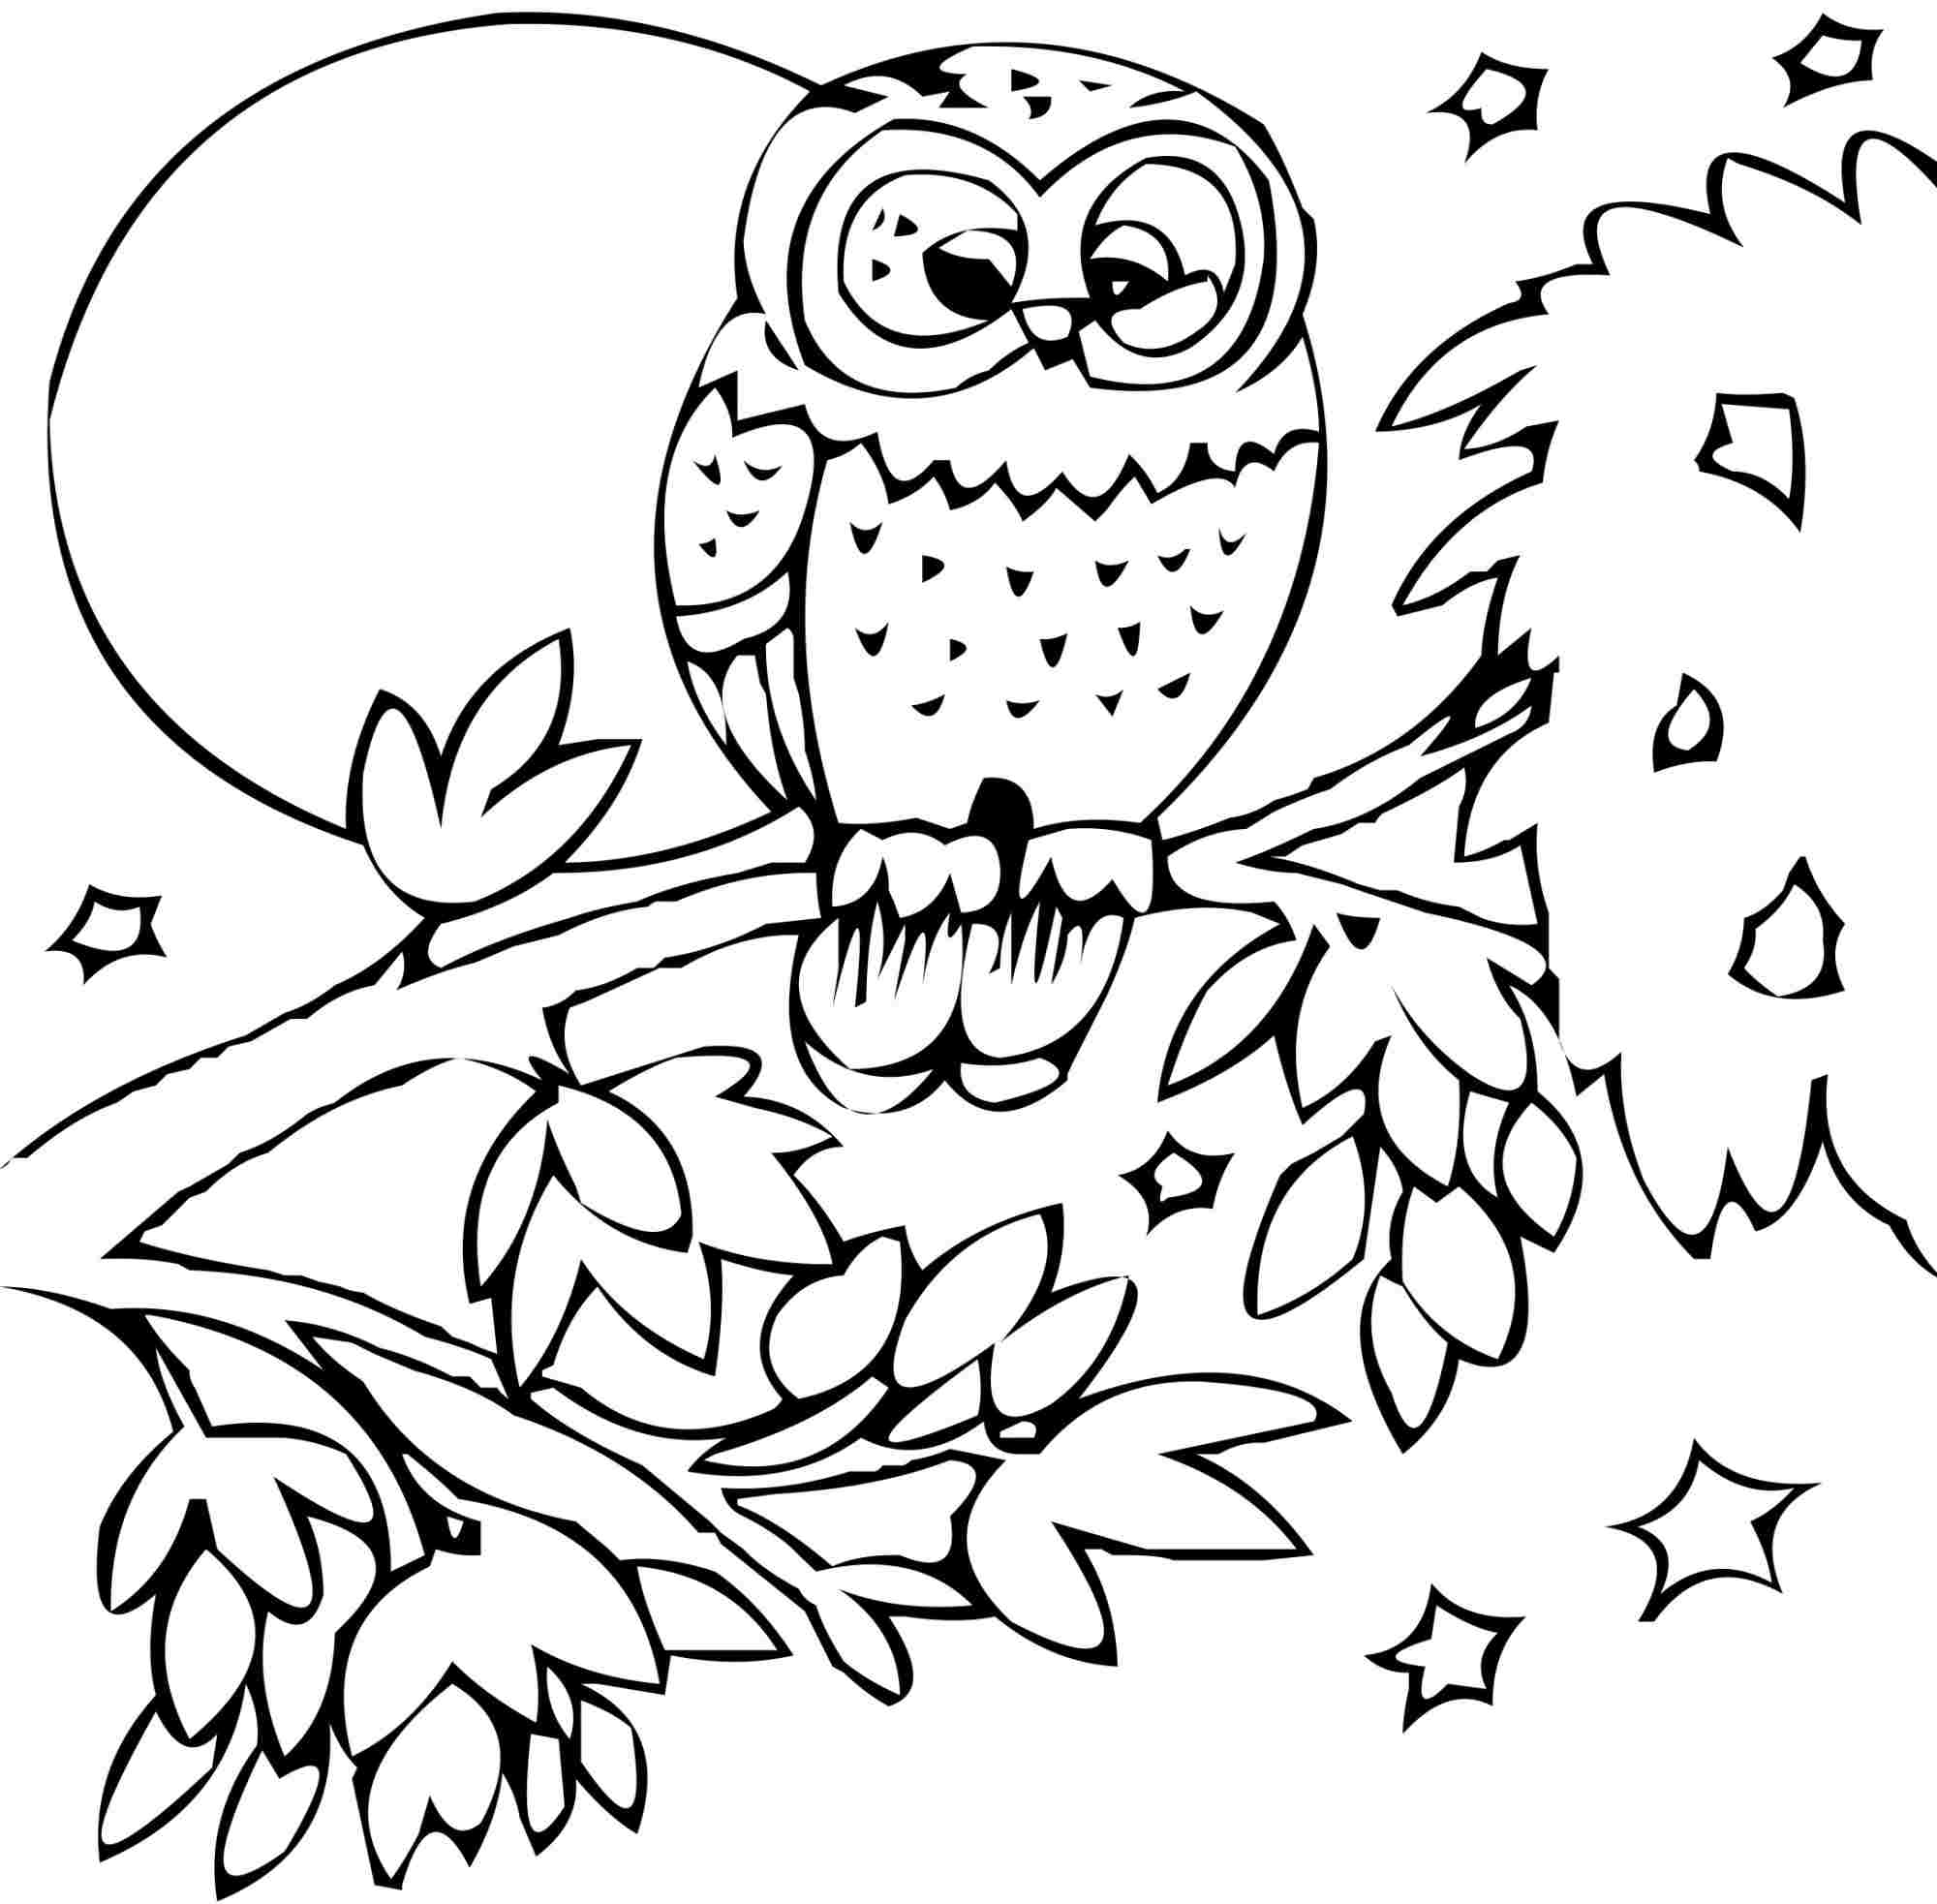 Printable Coloring Pages For Adults Animals